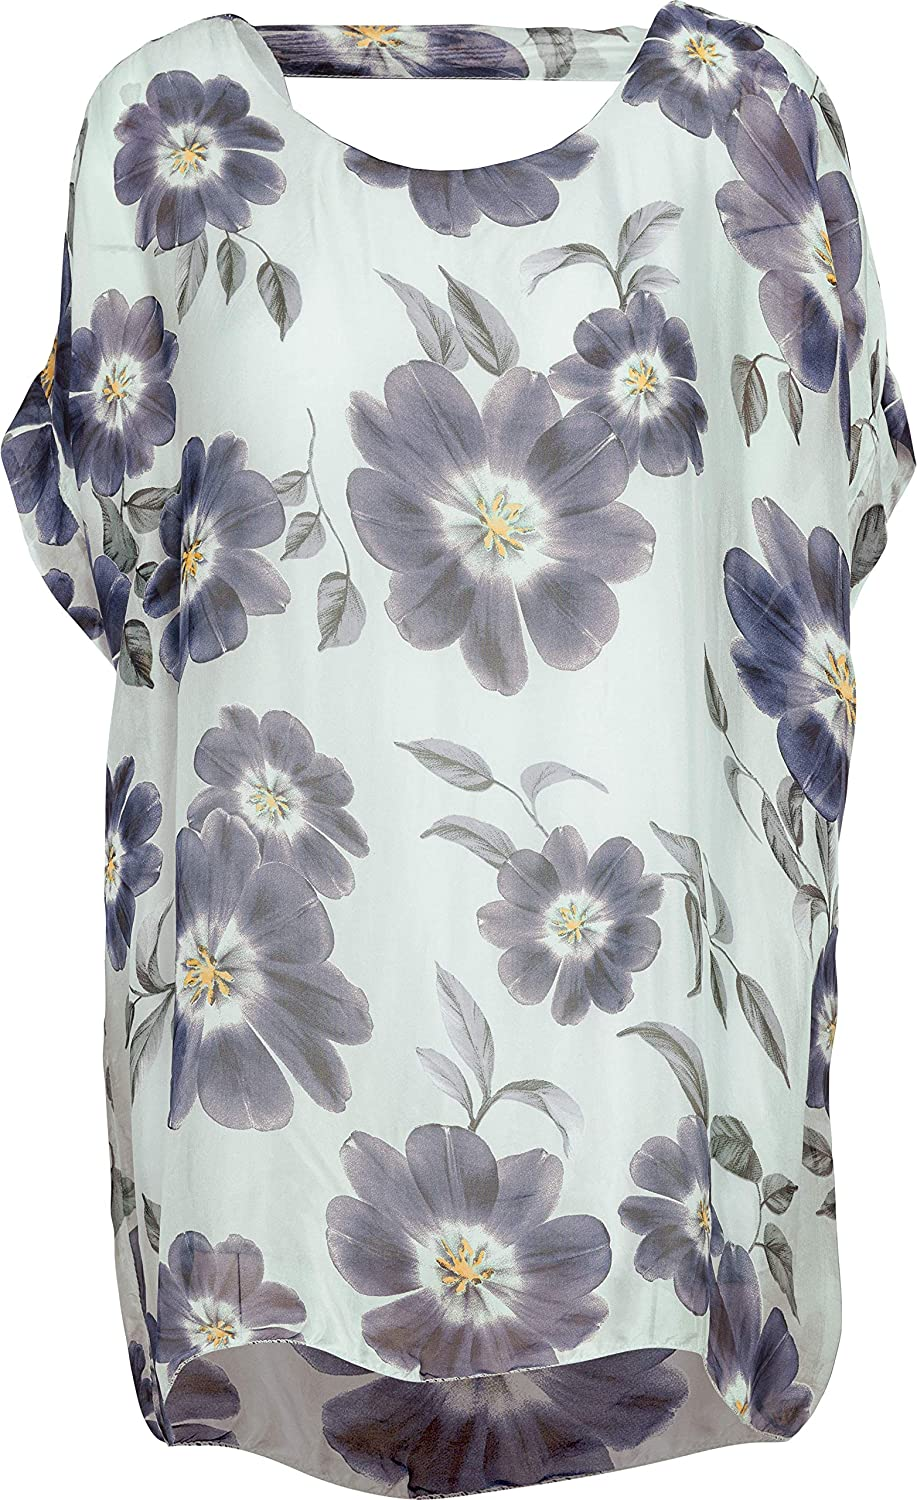 M Made in Italy Women's Floral Print Short Sleeve Tunic